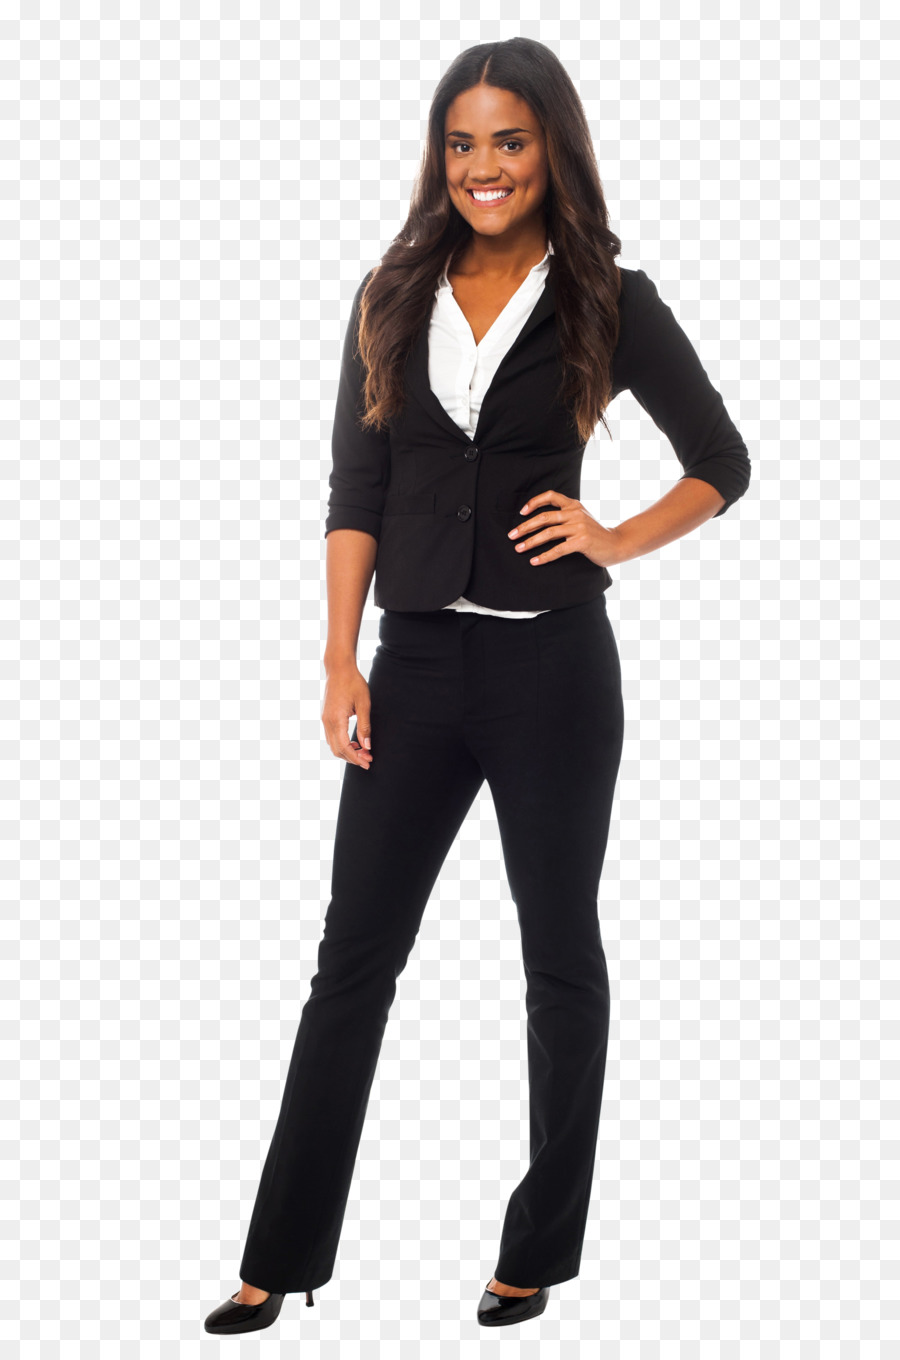 business casual dress clothing pant suits dress png download